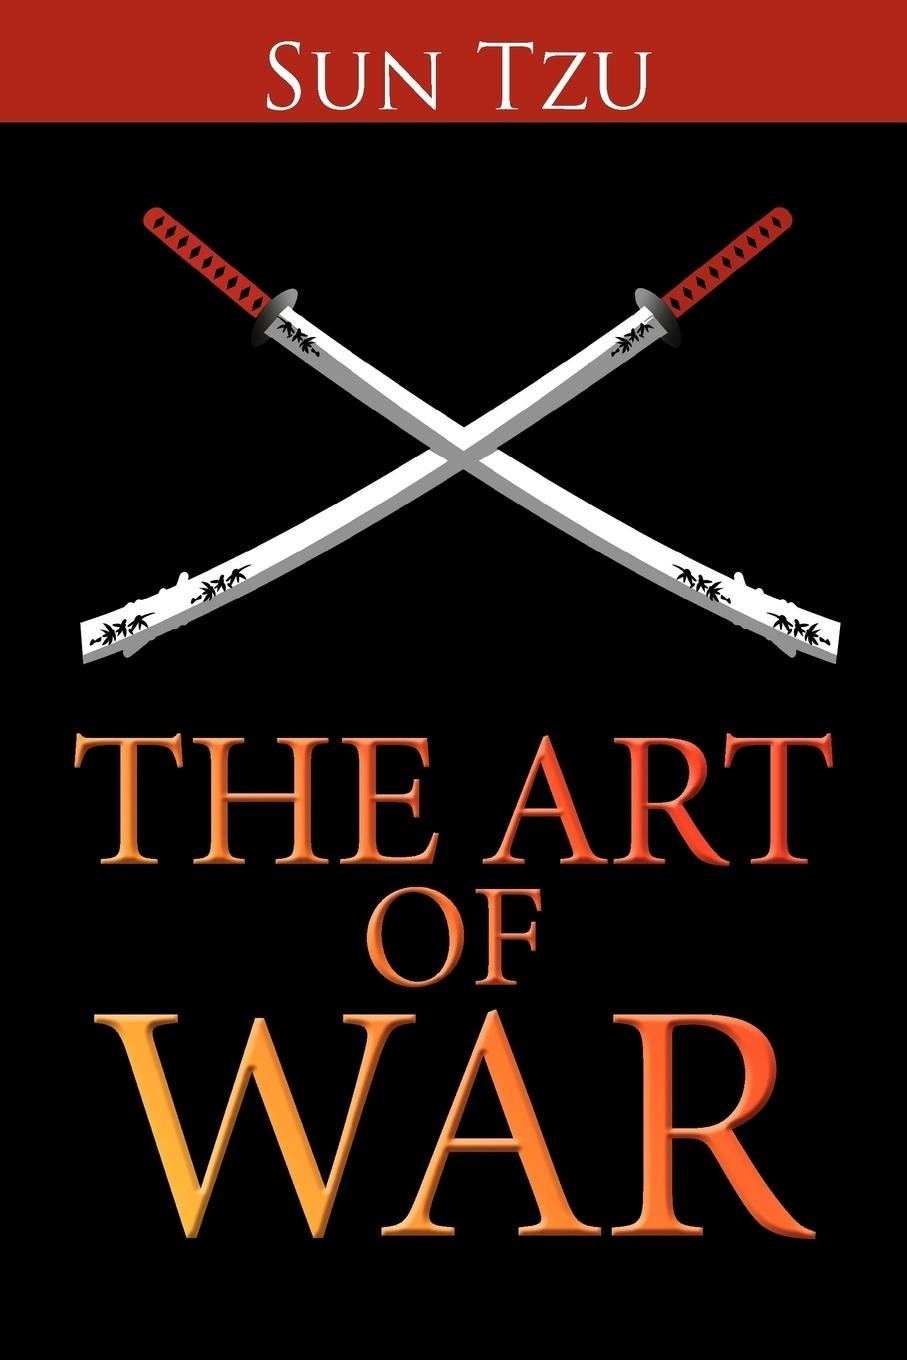 KIU Book Club: The Art of War by Sun Tzu